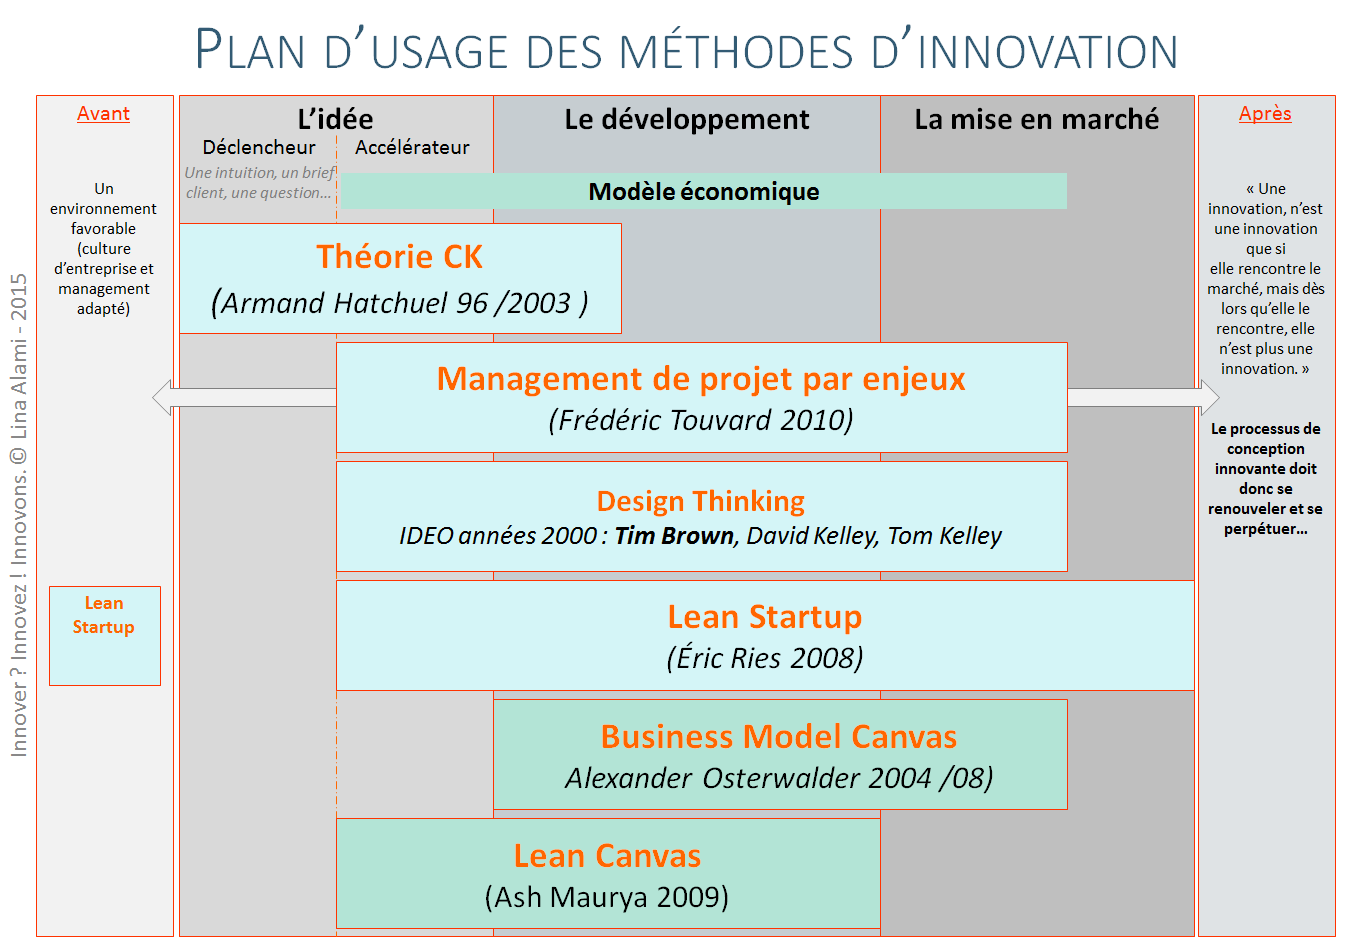 comment innover : plan usage methodes innovation - Lina Alami